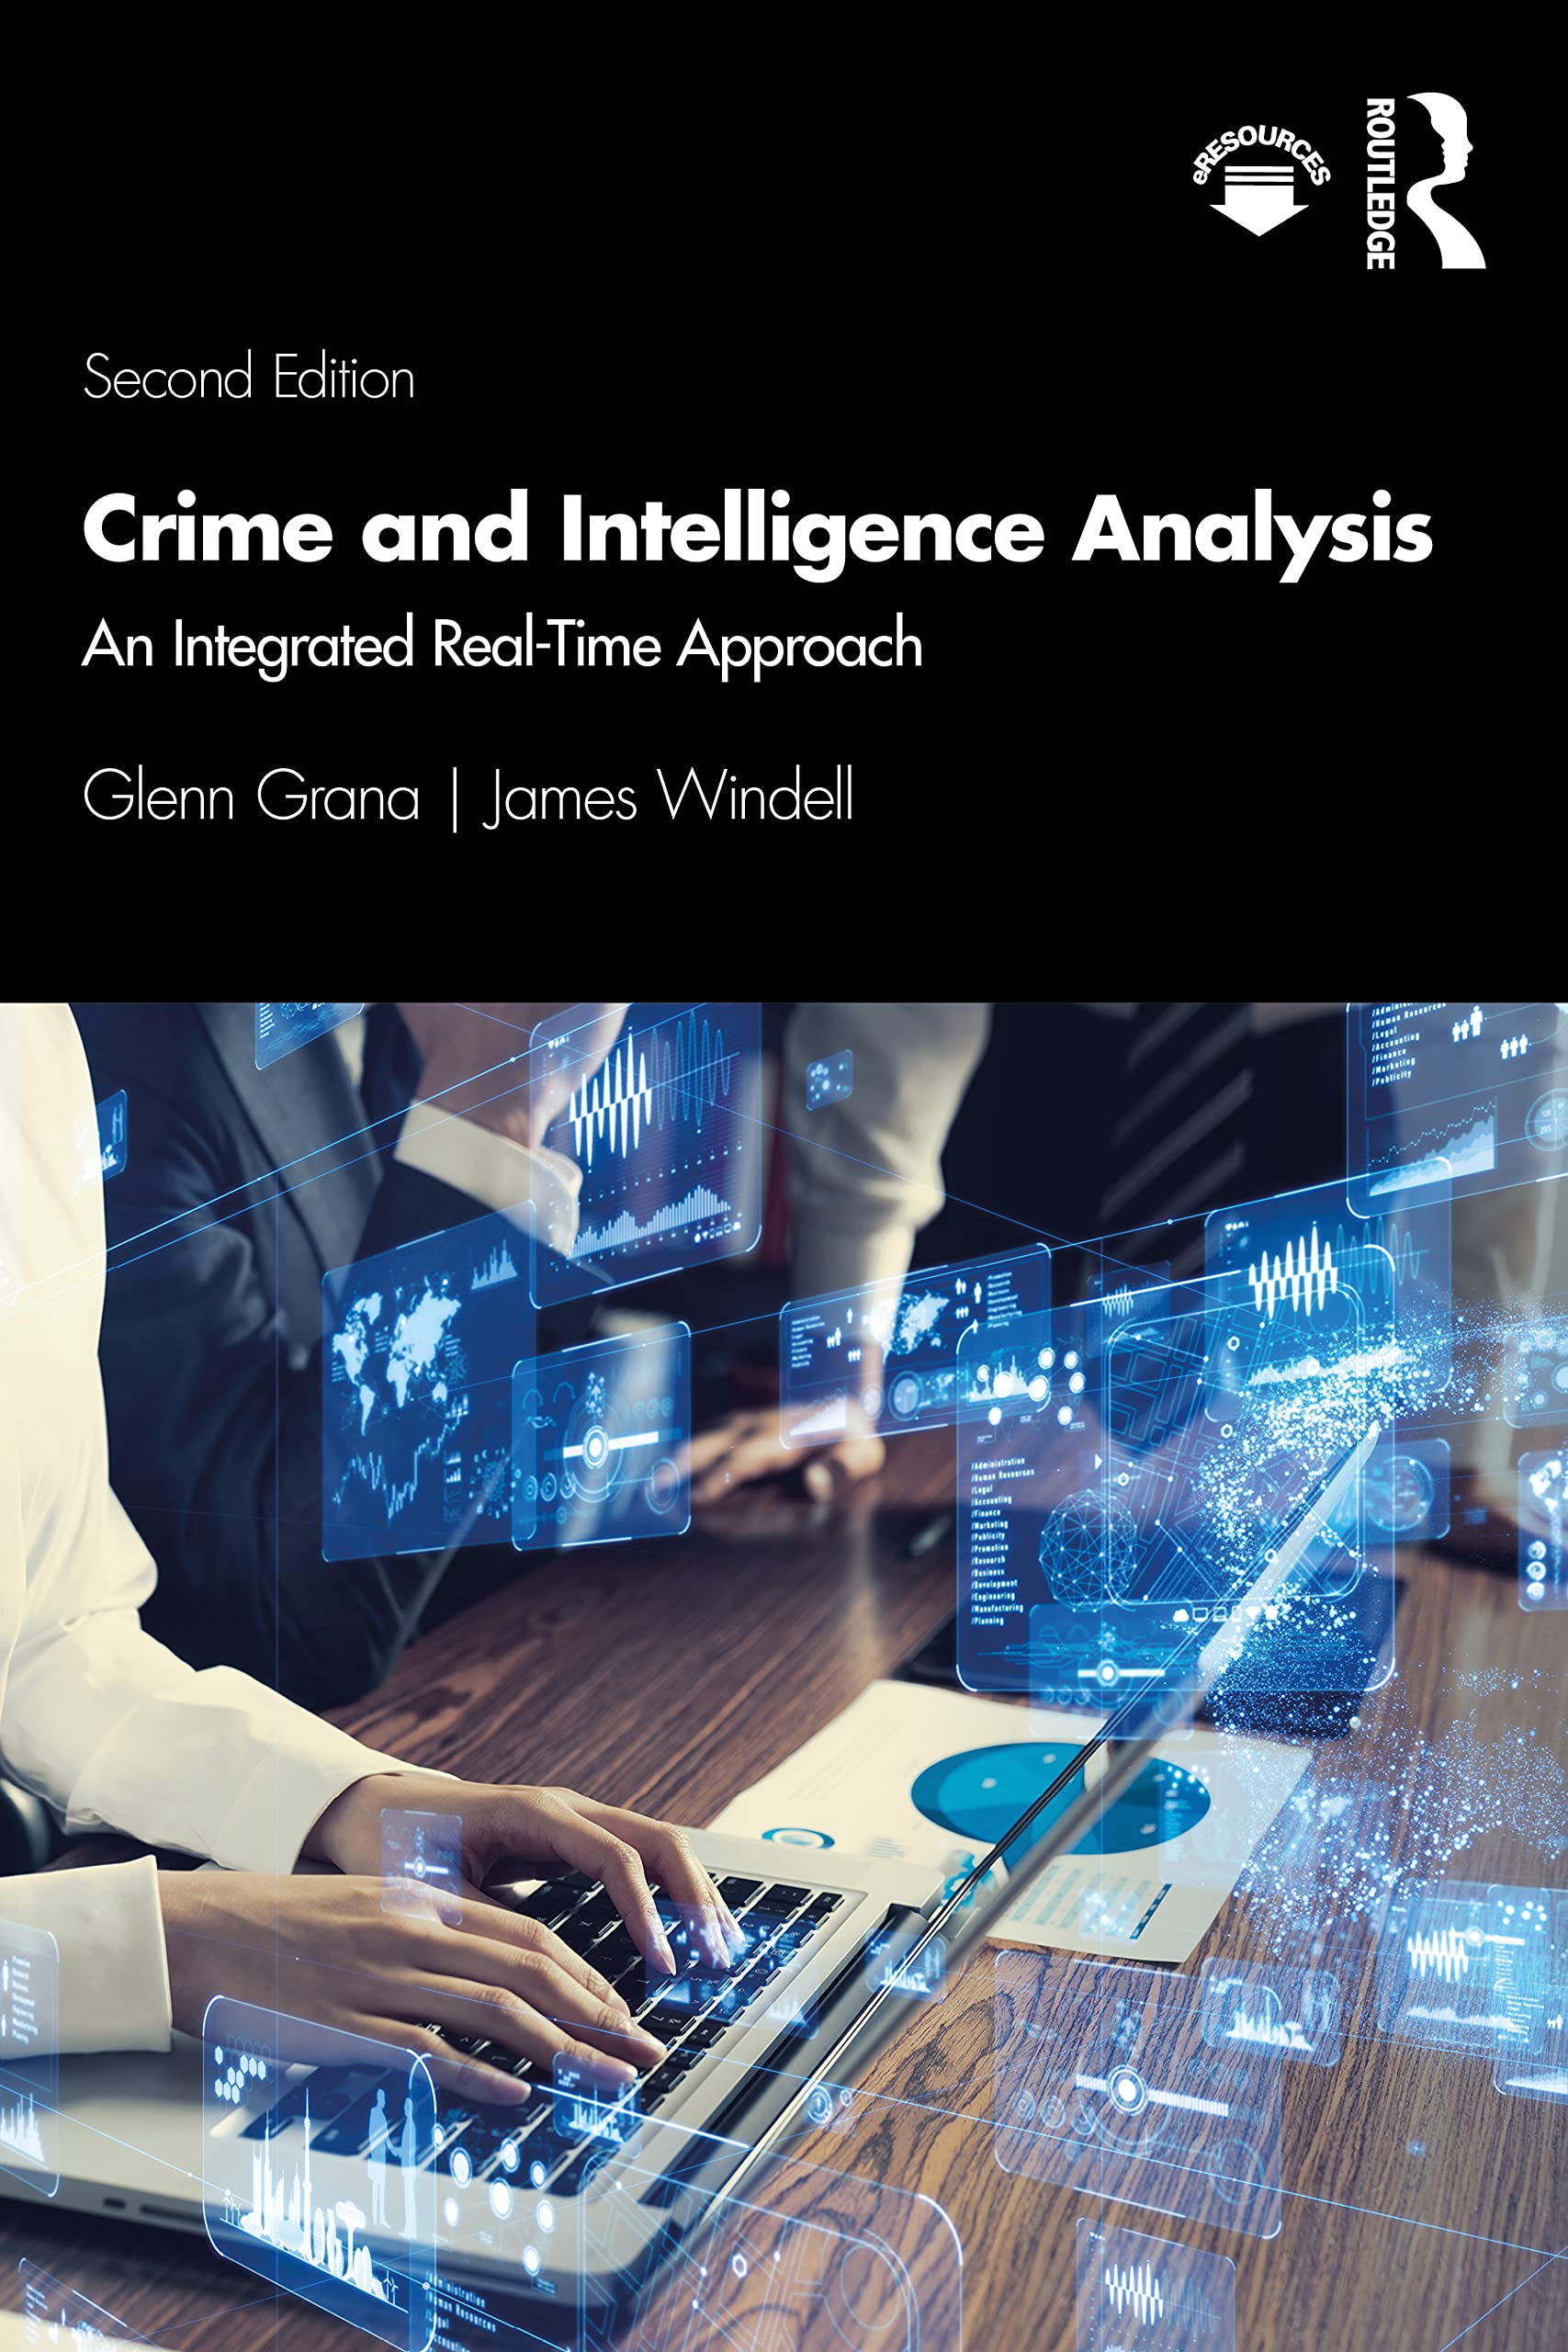 [#INTELLIGENCE] Livre: «Crime and Intelligence Analysis: An Integrated Real-time Approach» (2021)